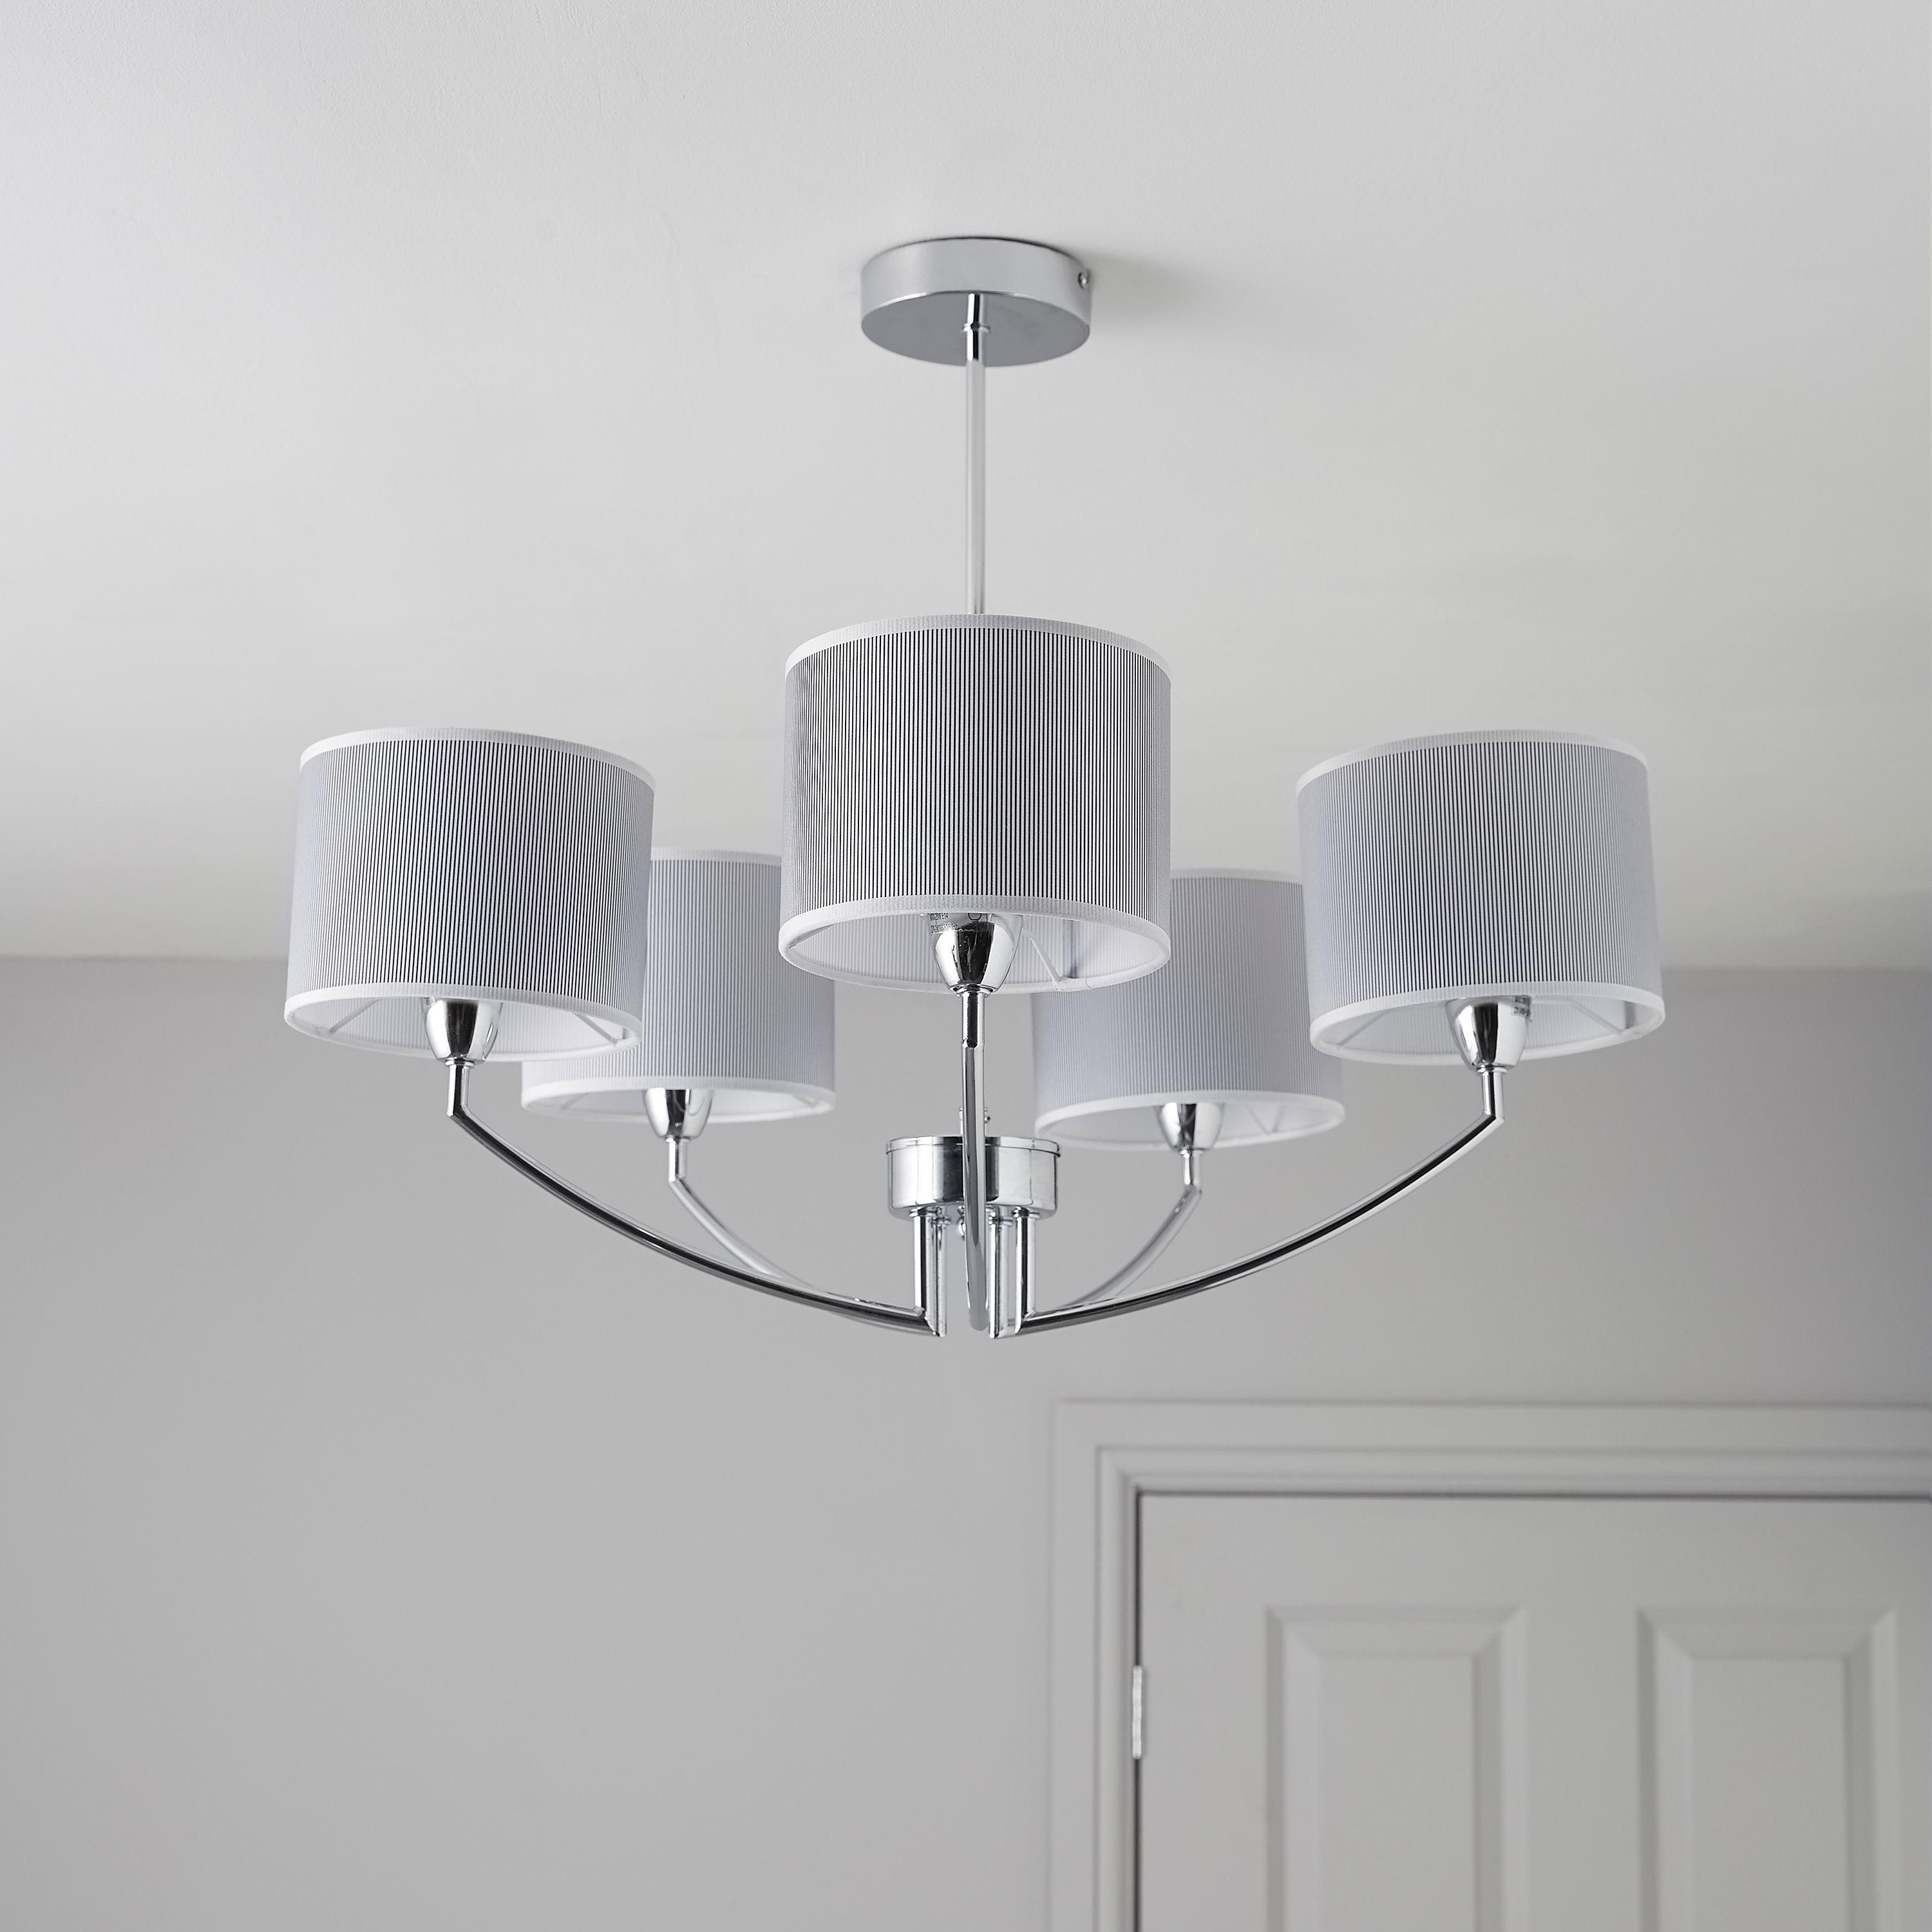 lounge ceiling lighting. Fides Shaded Grey Chrome Effect 5 Lamp Pendant Ceiling Light | Departments DIY At B Lounge Lighting C